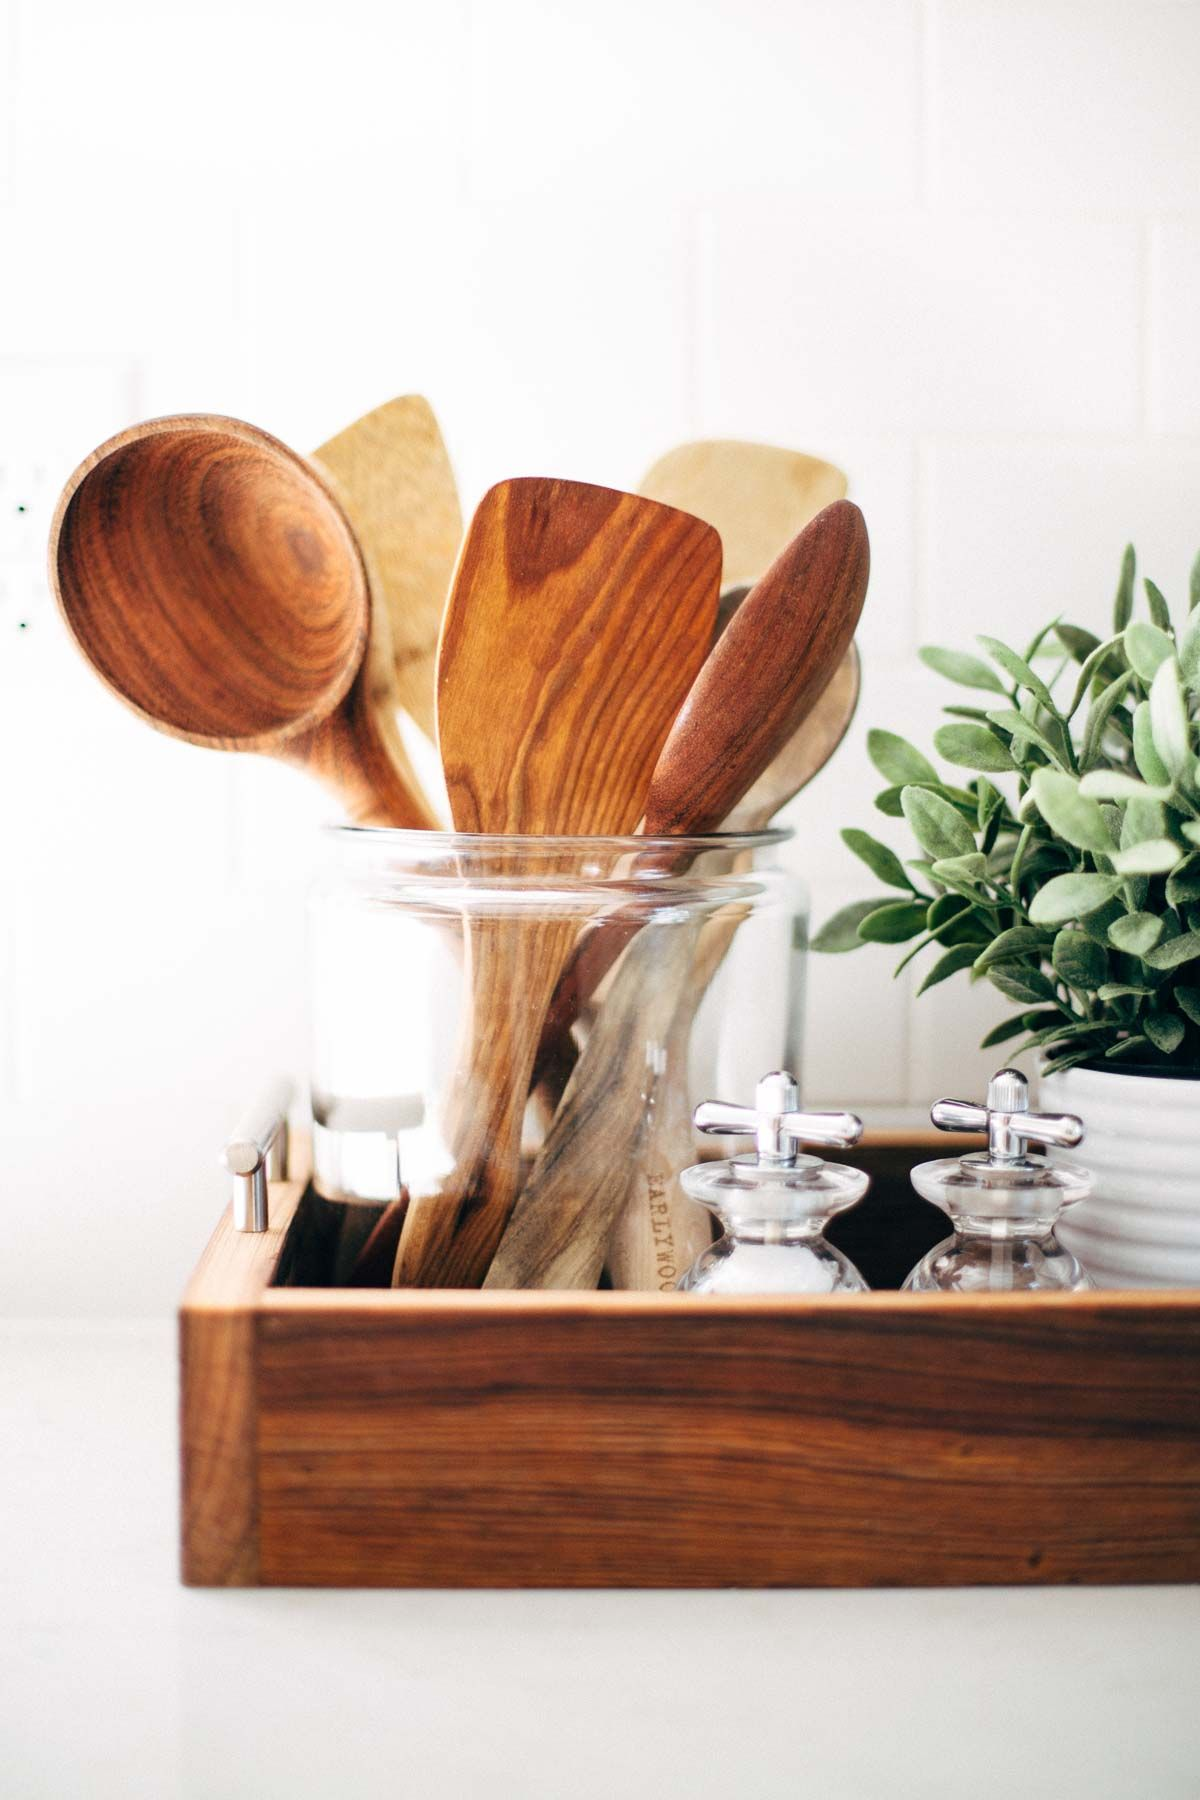 Earlywood Handcrafted Wooden Utensils Giveaway Simple Kitchen